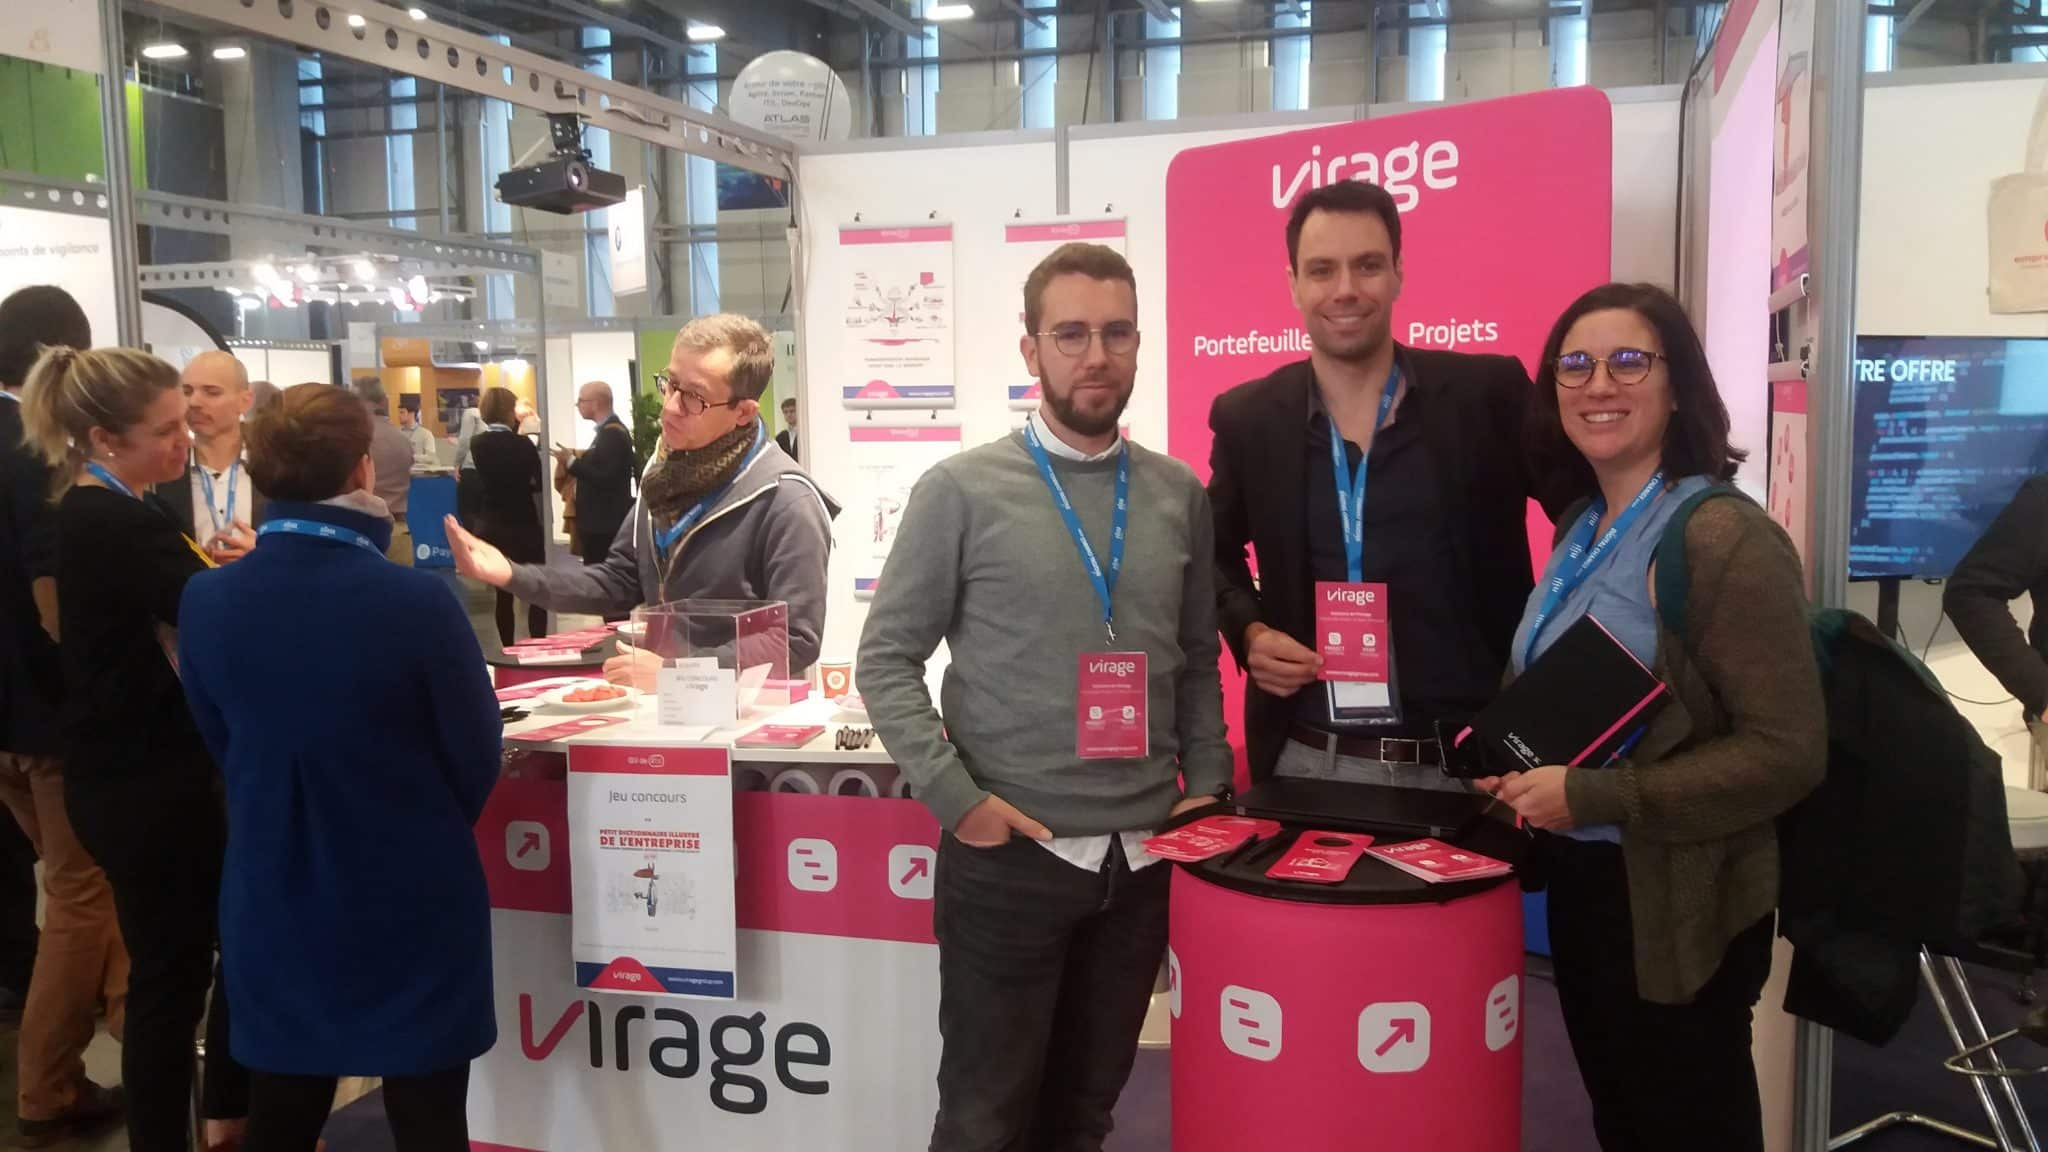 Equipe_Virage_Group_Digital_Change